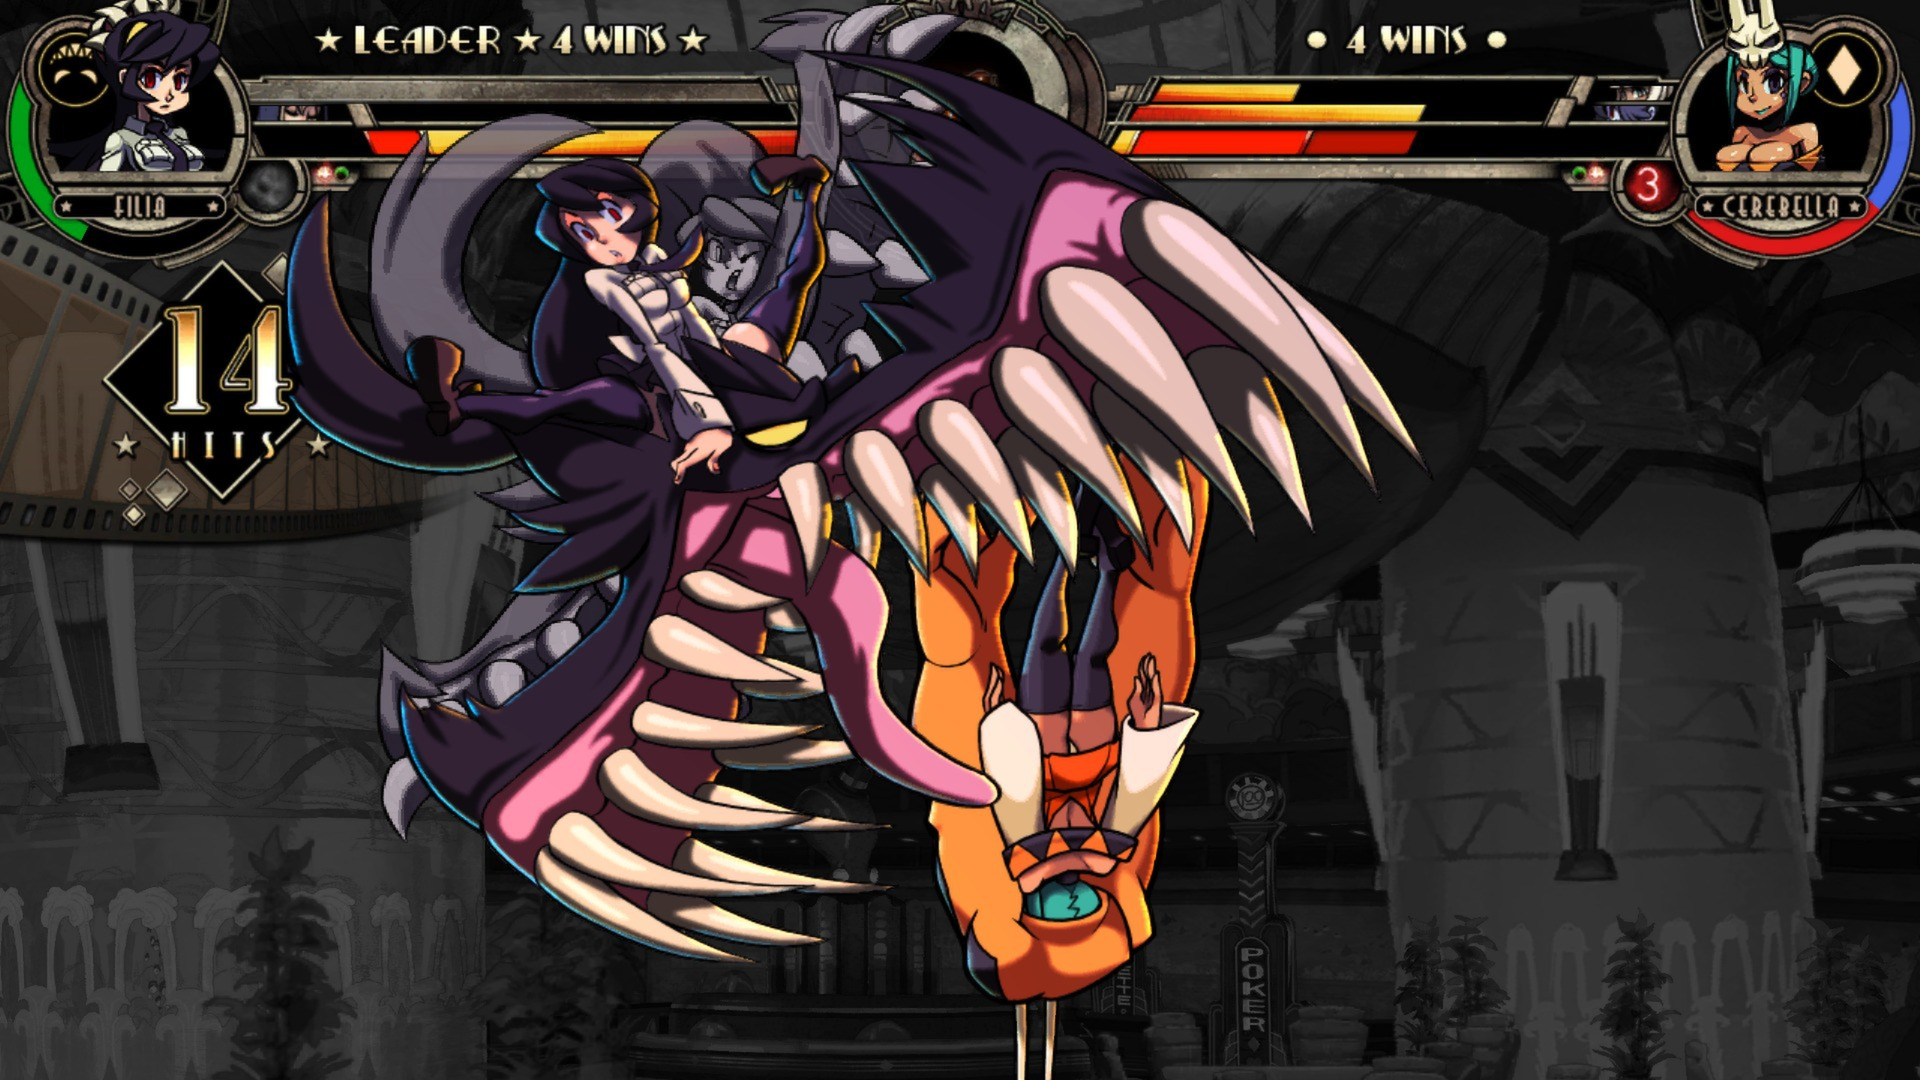 Skullgirls (Steam Key, GLOBAL)